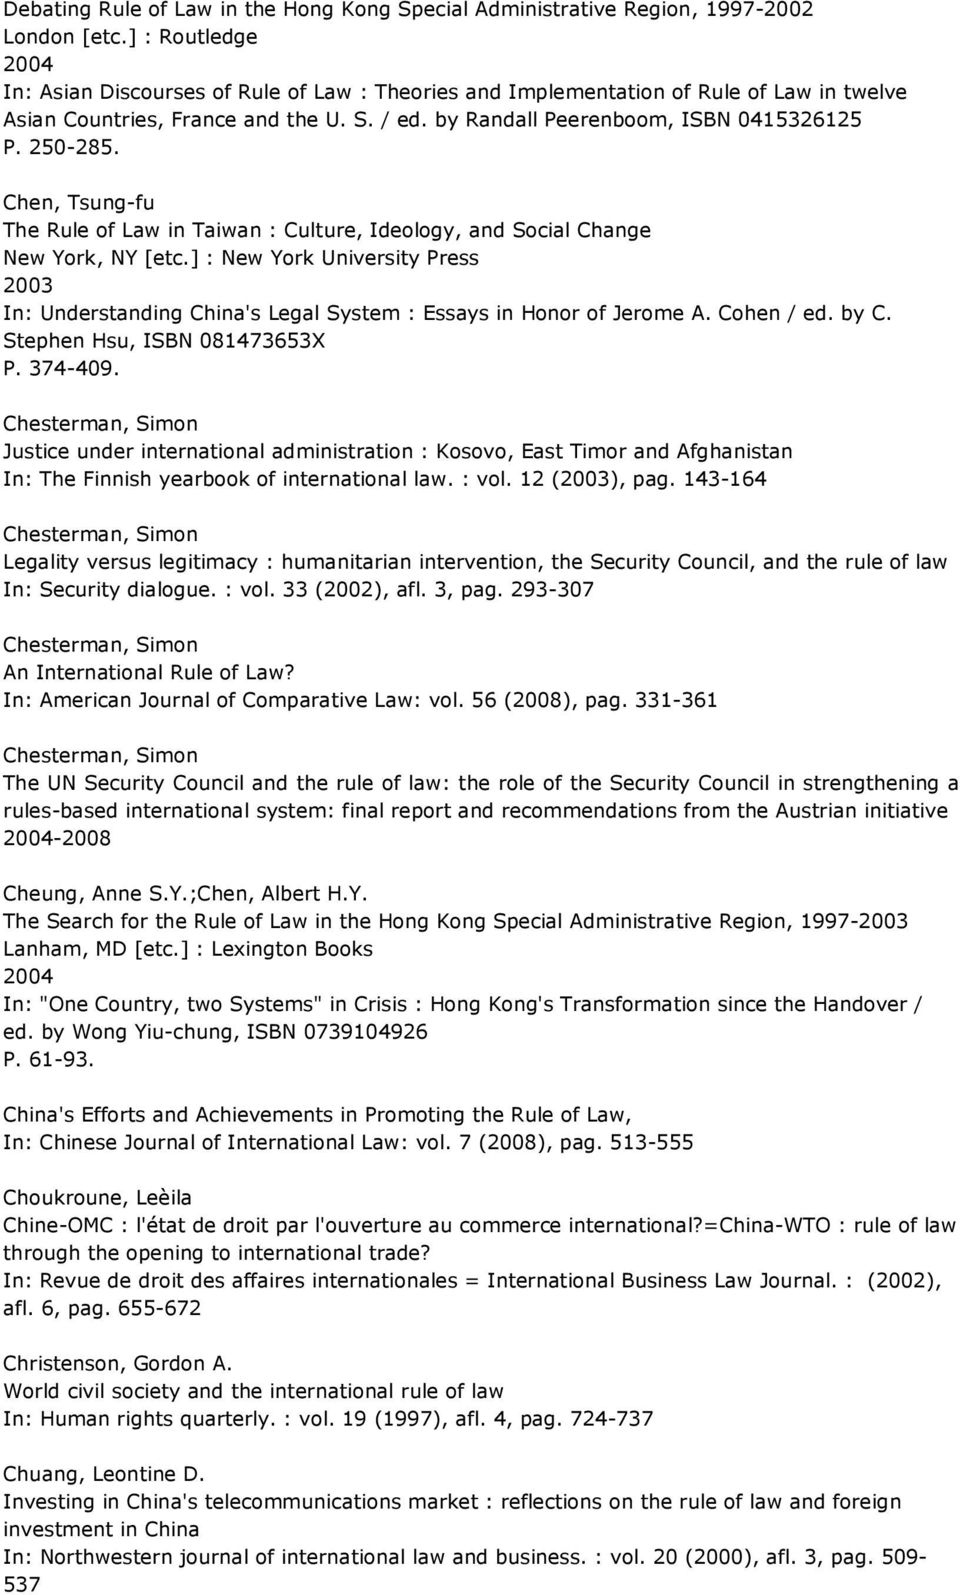 Chen, Tsung-fu The Rule of Law in Taiwan : Culture, Ideology, and Social Change New York, NY [etc.